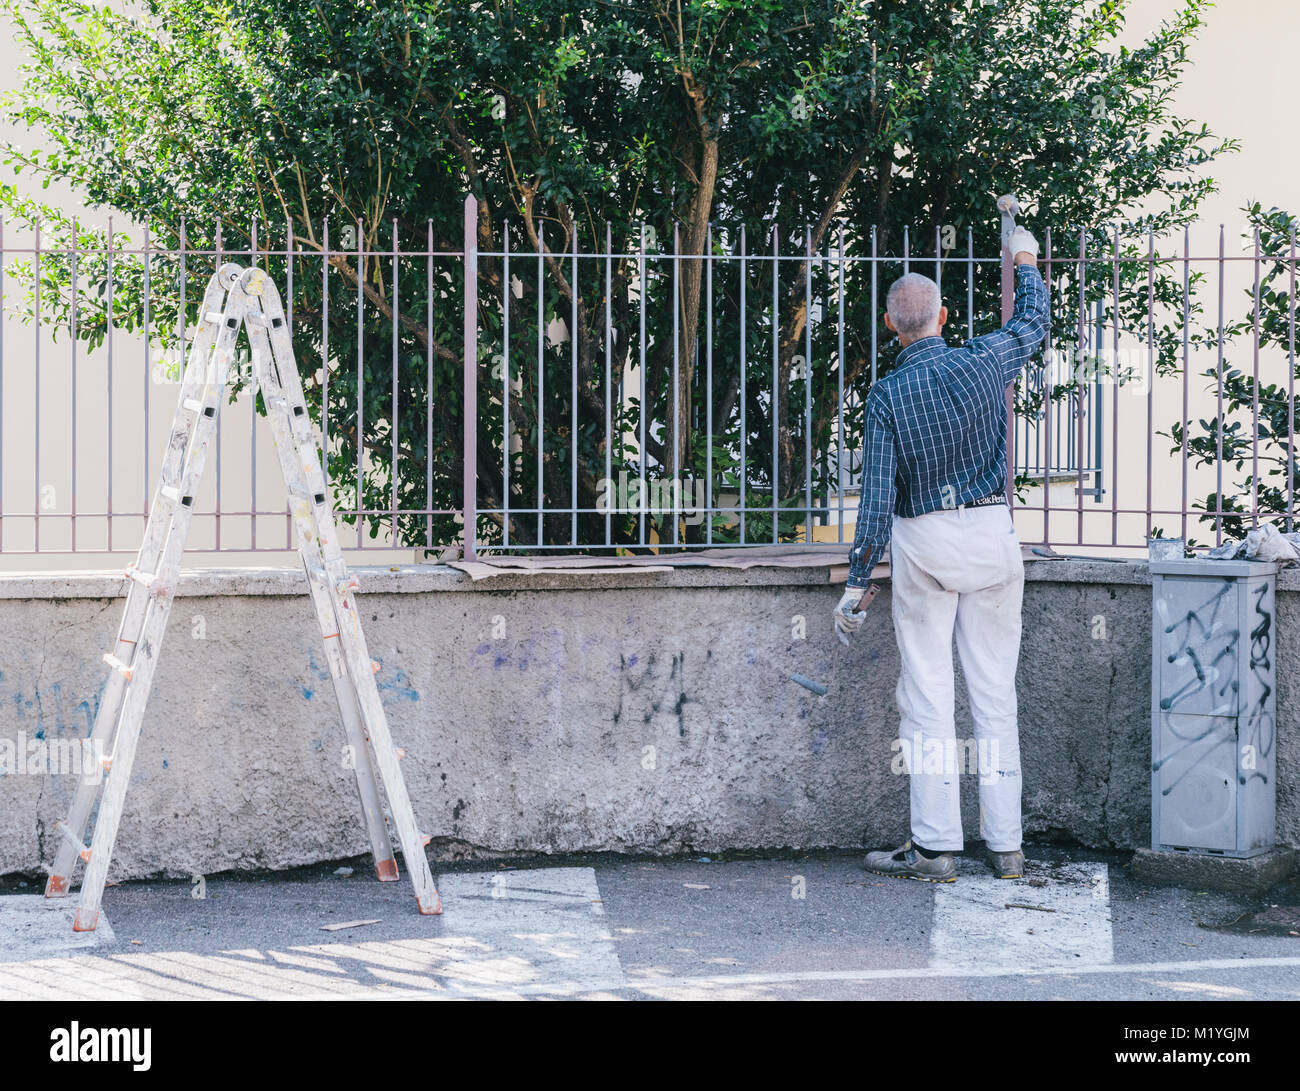 Older man painting a fence - Stock Image